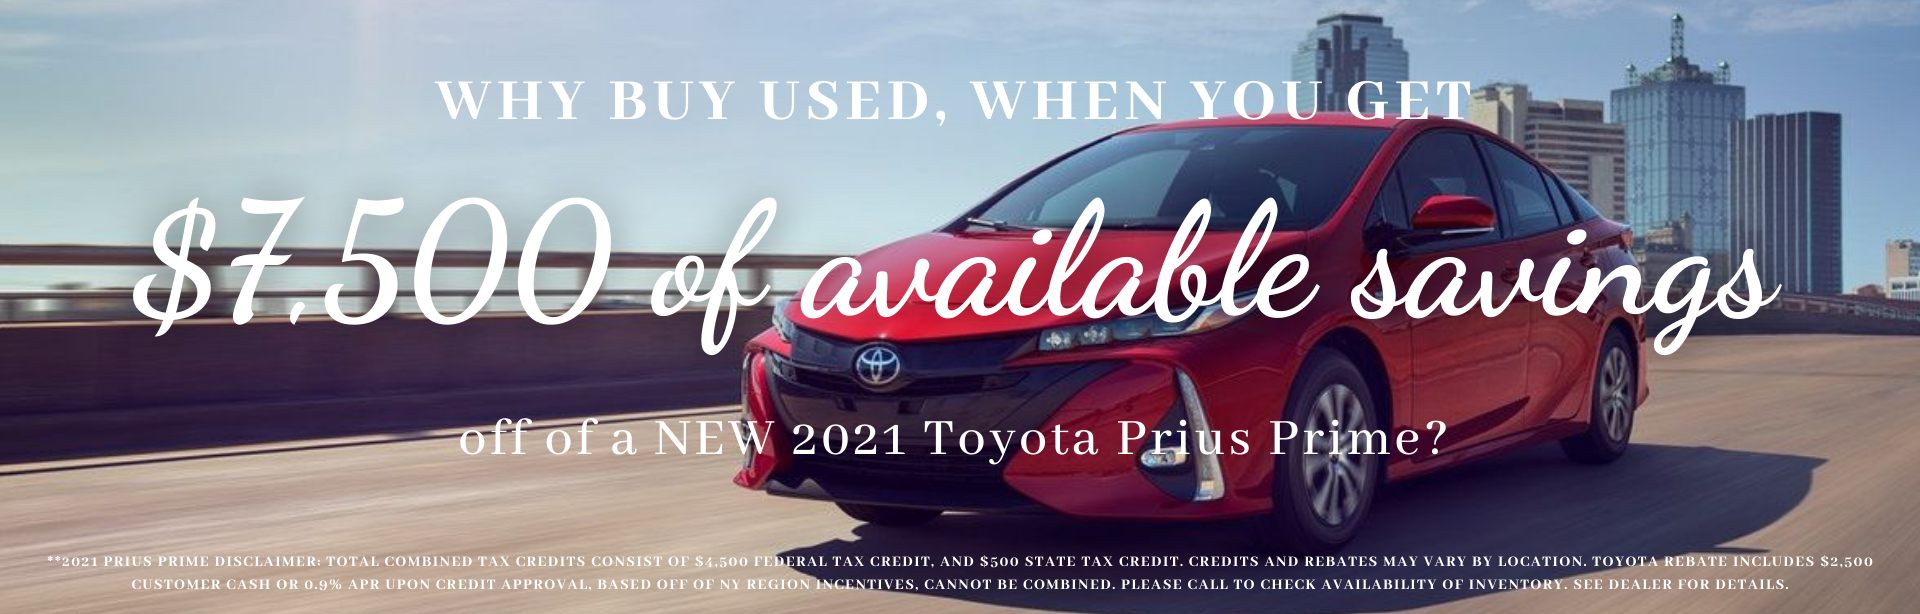 Why buy used, when you get $7,500 of available savings off of a NEW 2021 Toyota Prius Prime_ (2)